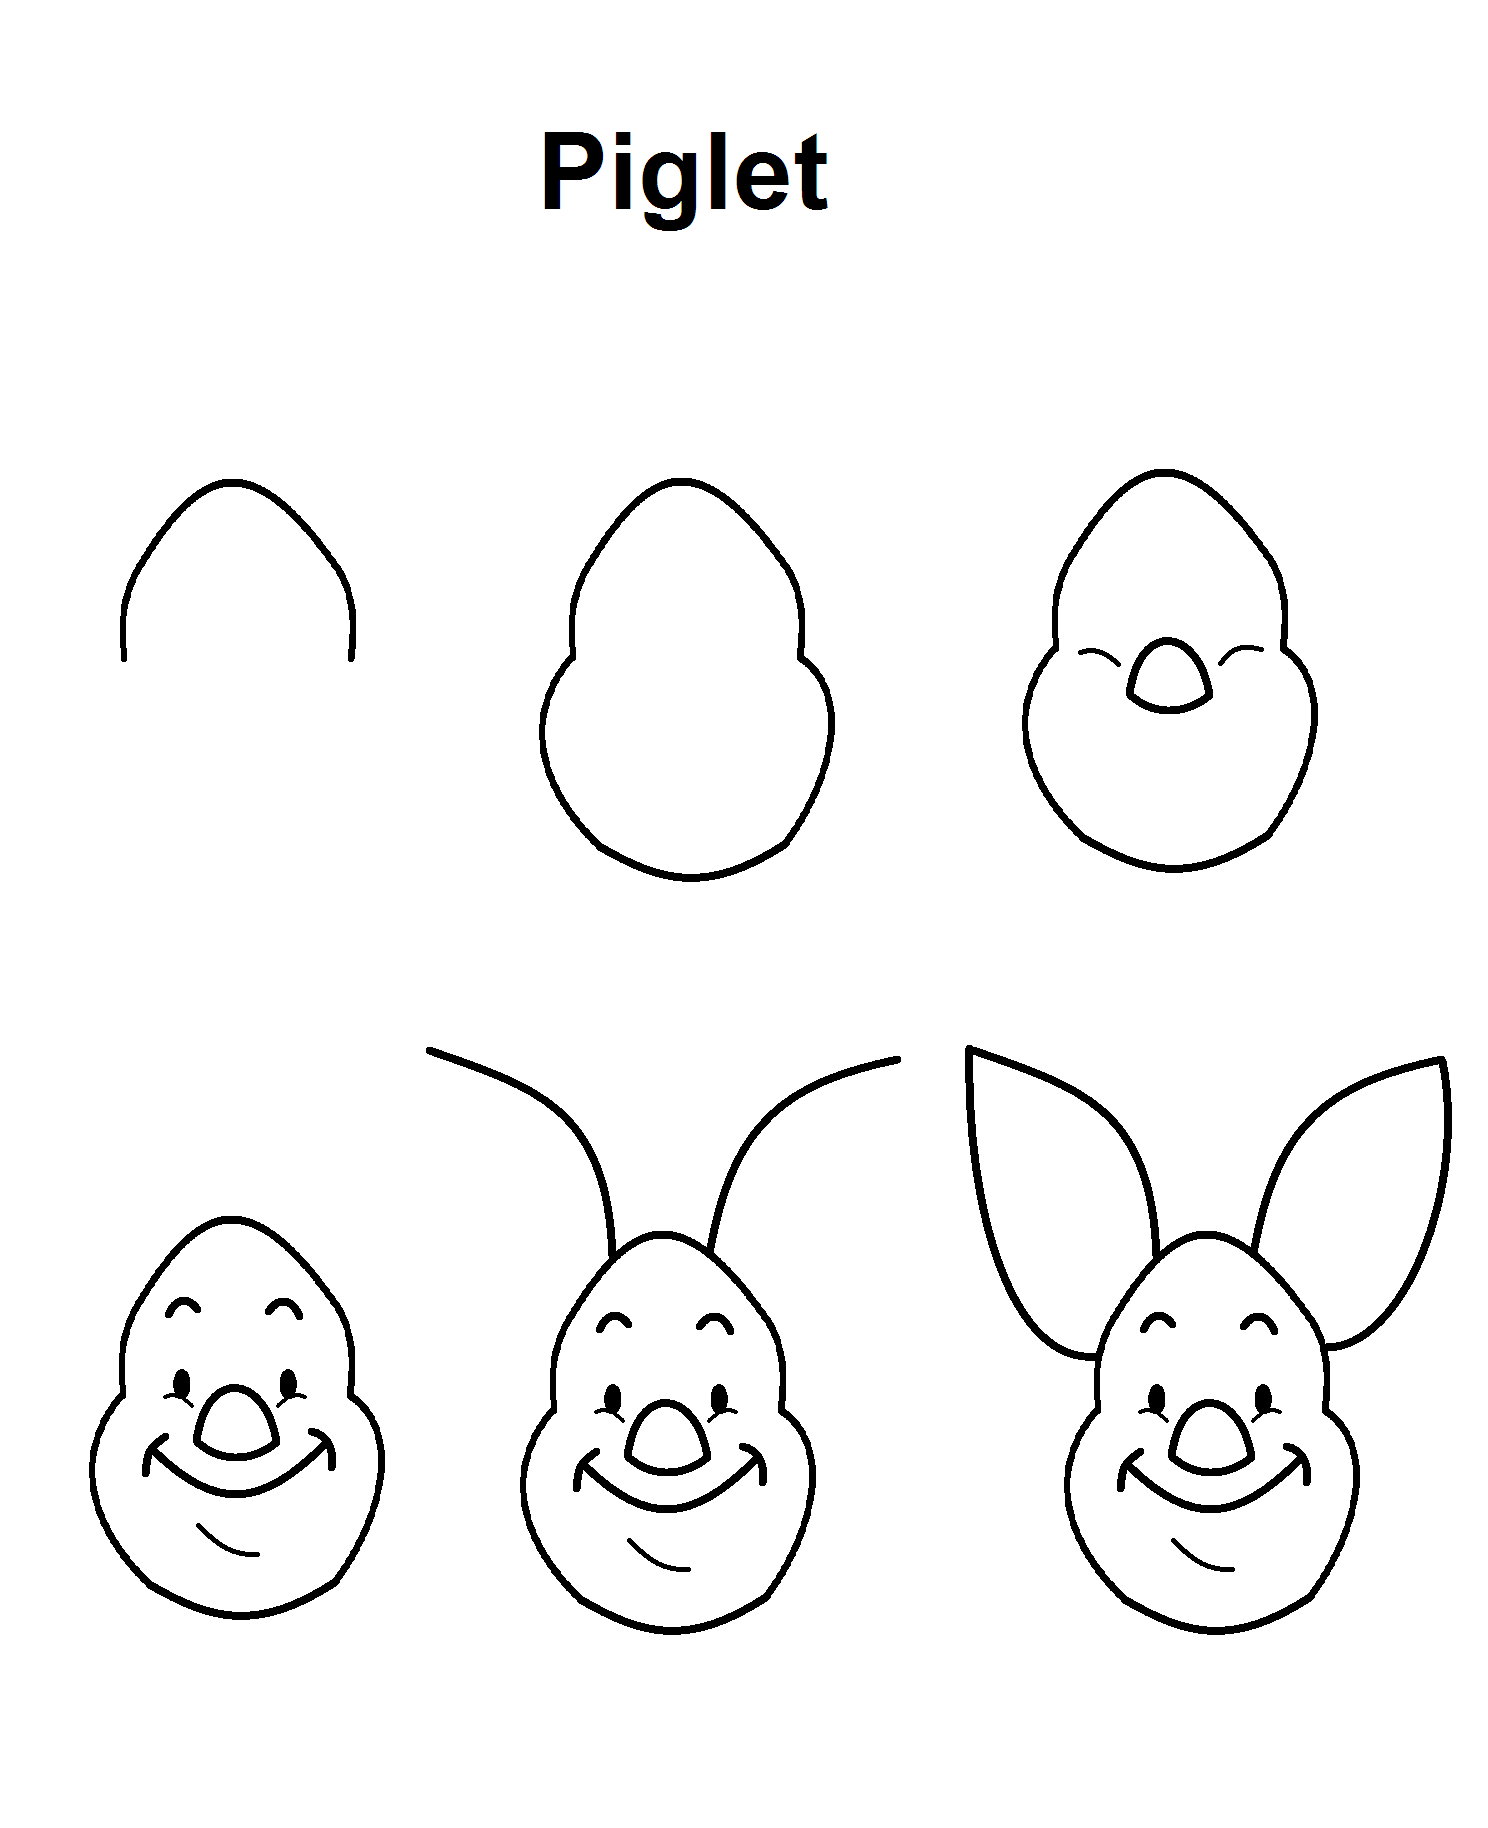 easy disney characters to draw step by step how to draw disney characters learn how to draw draw characters easy disney to by step step